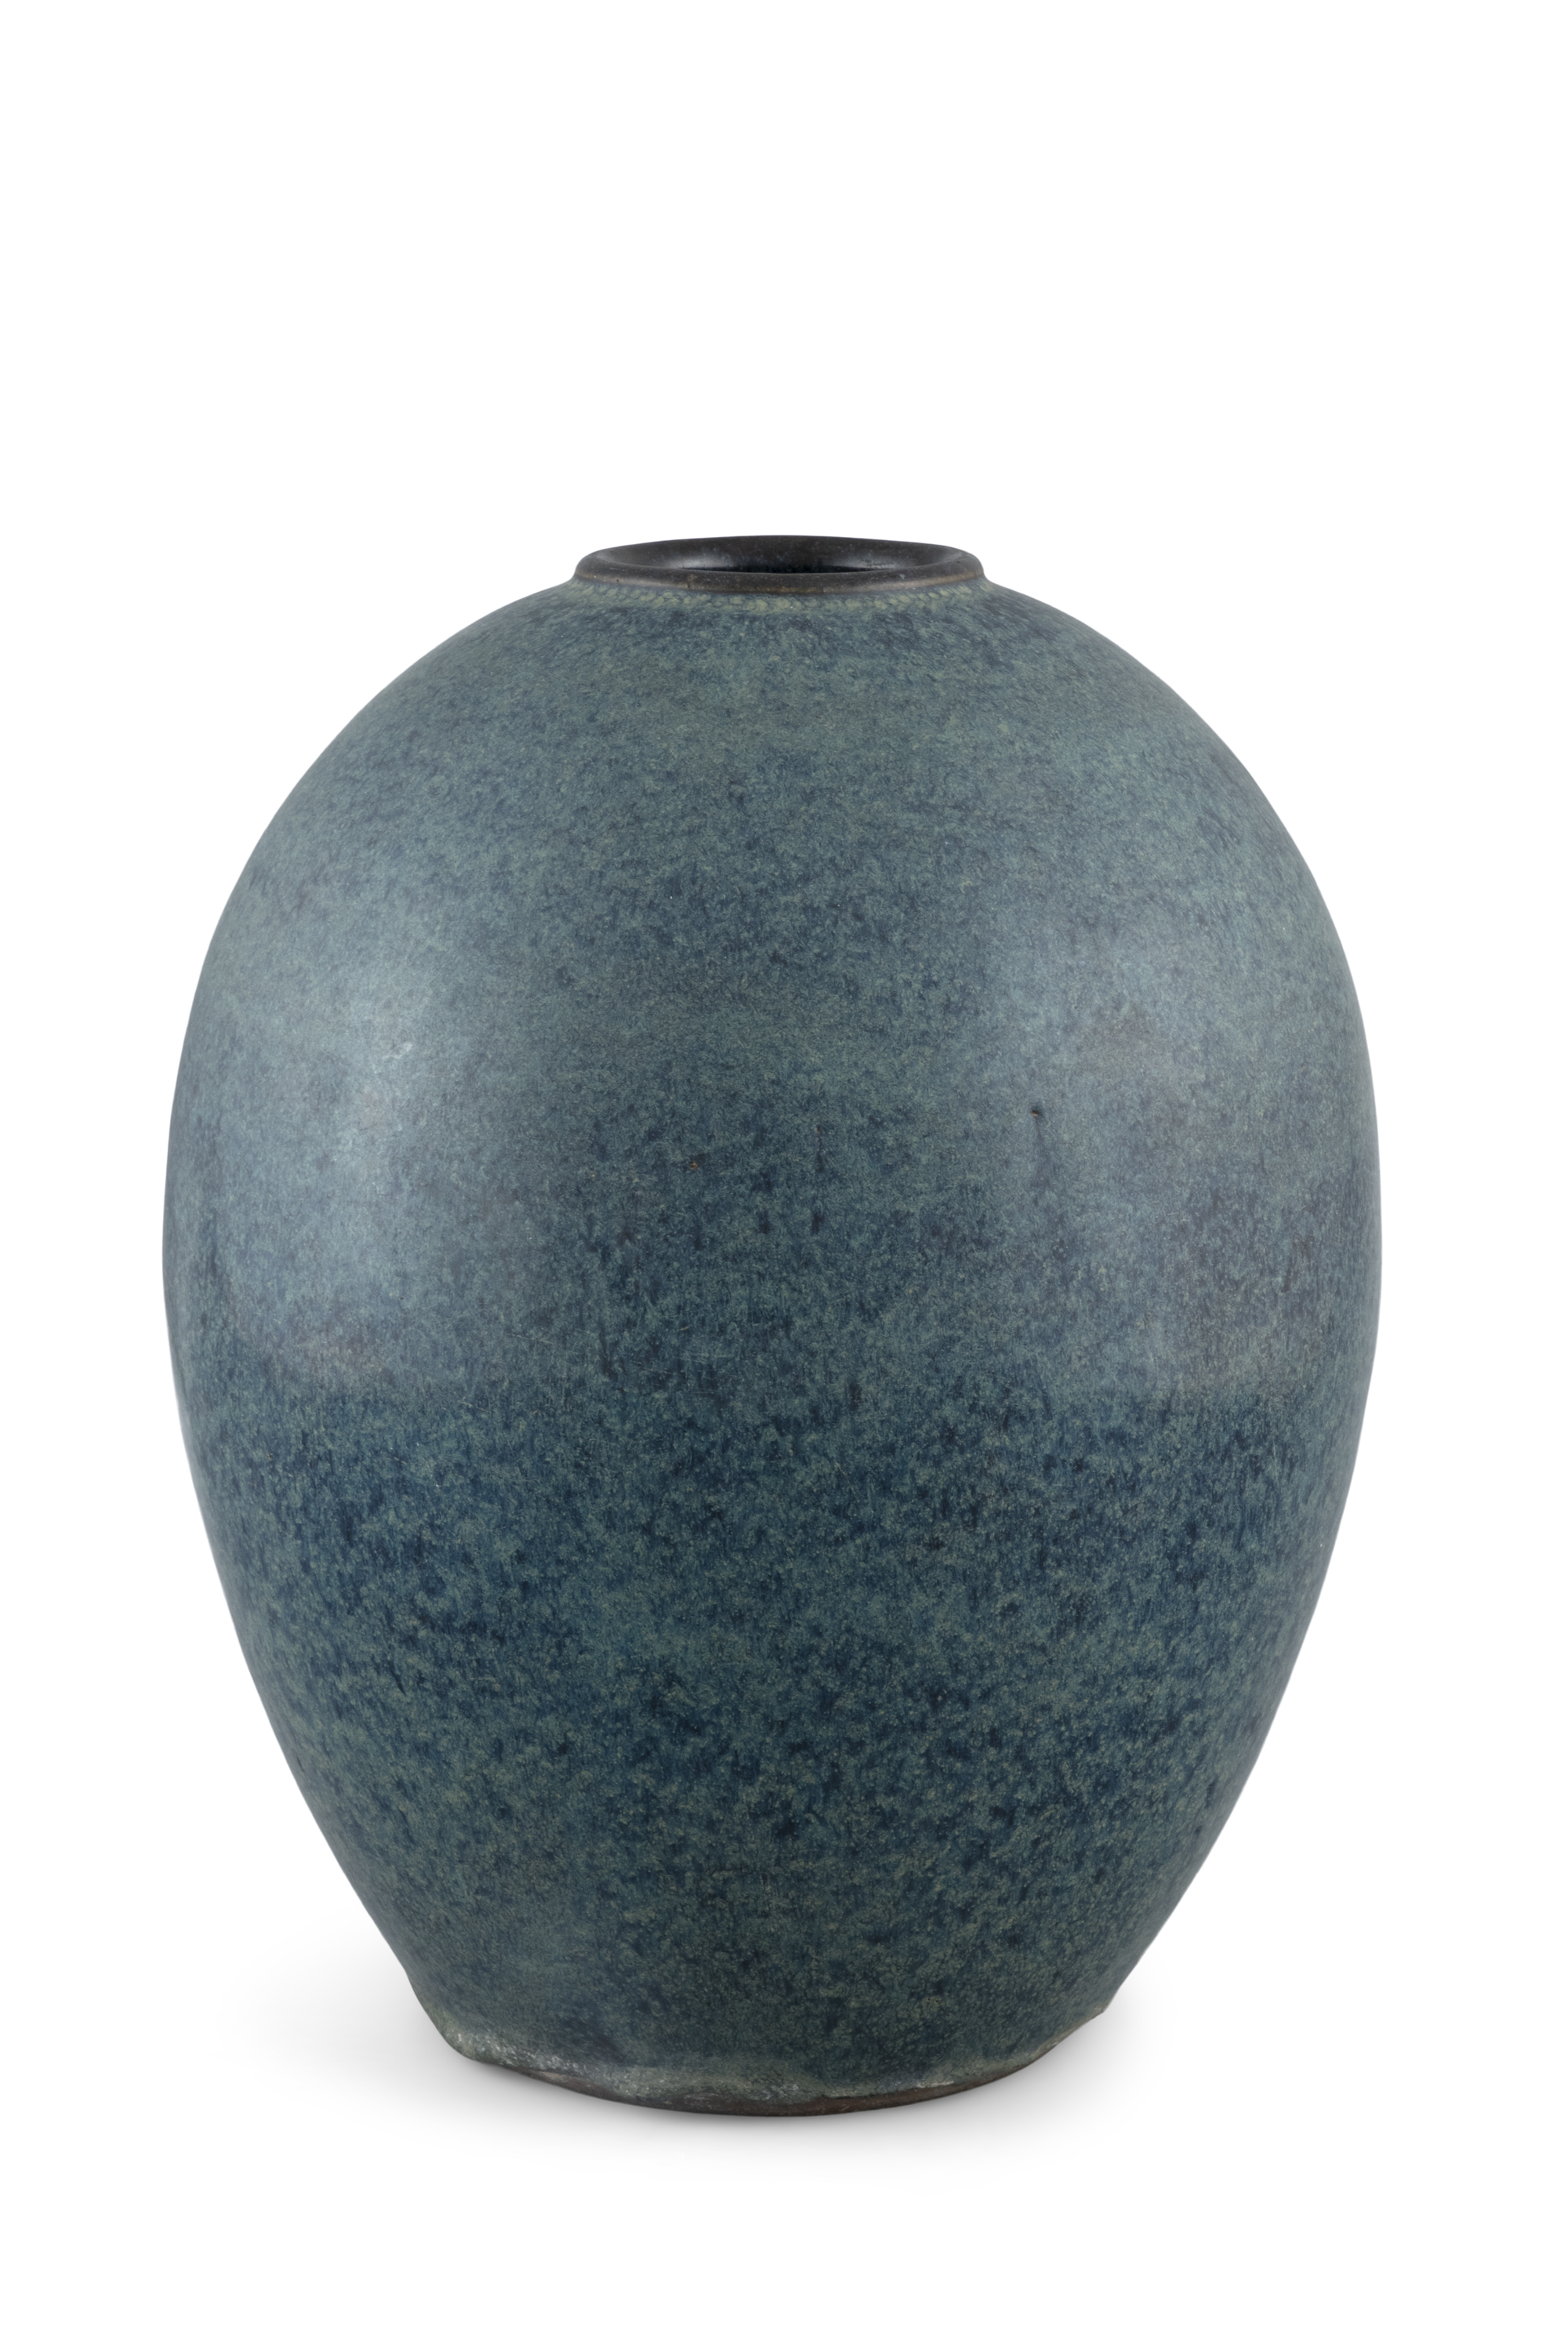 A ROBIN'S EGG GLAZED YIXING VASE BEARING THE SEAL OF GE MINGXIANG 葛明祥 China, 18th century or later - Image 2 of 15